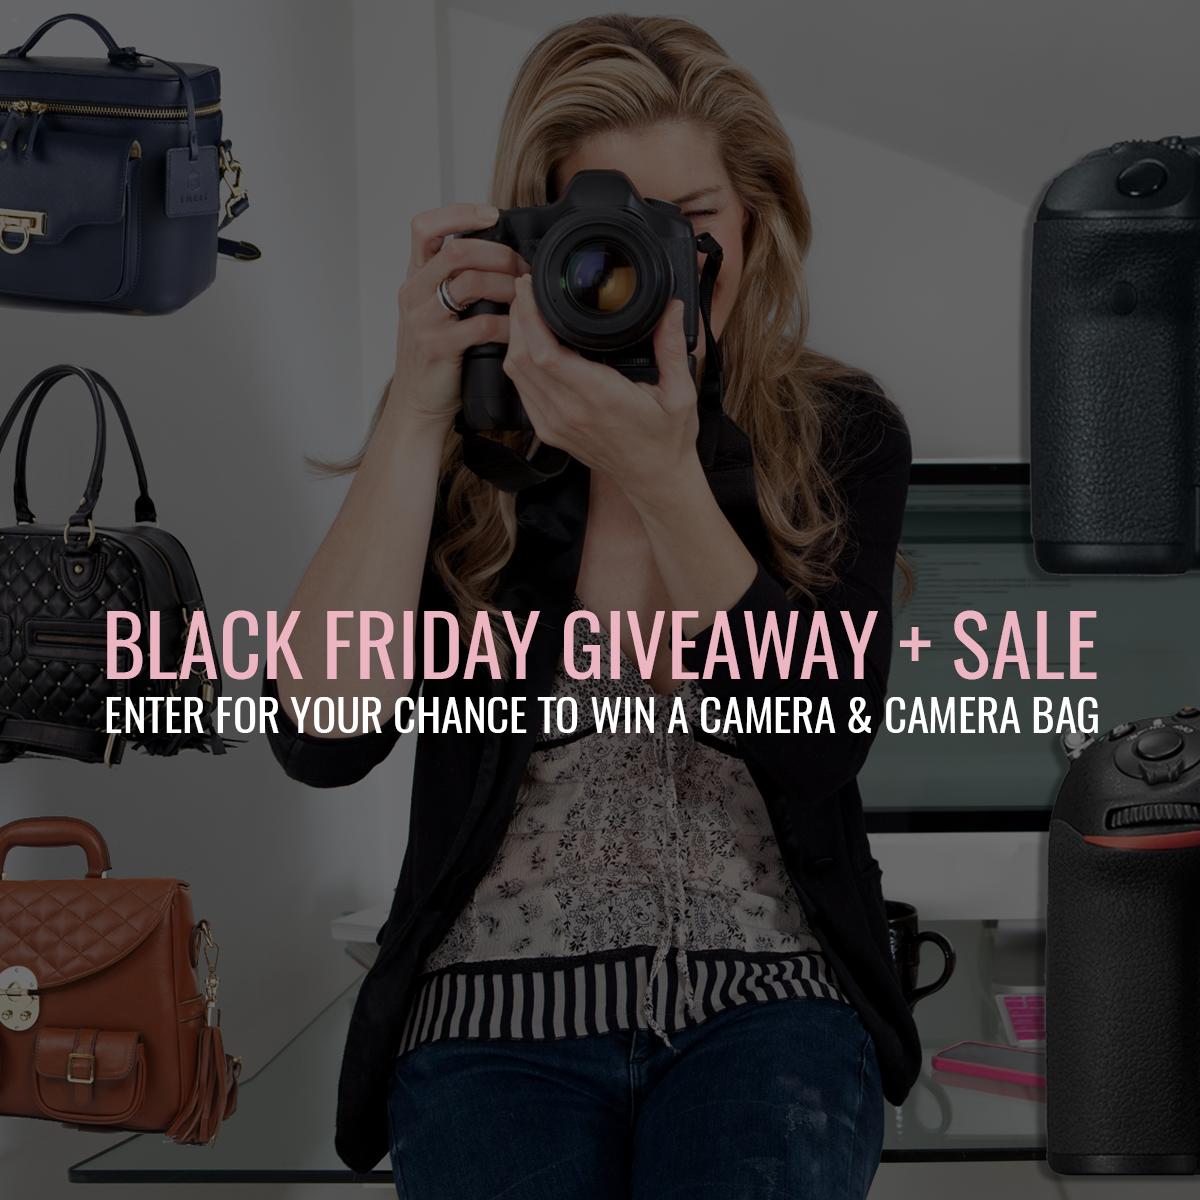 summeranan-photoshop-actions-for-photographers-blackfriday-camera-giveaway-and-sale